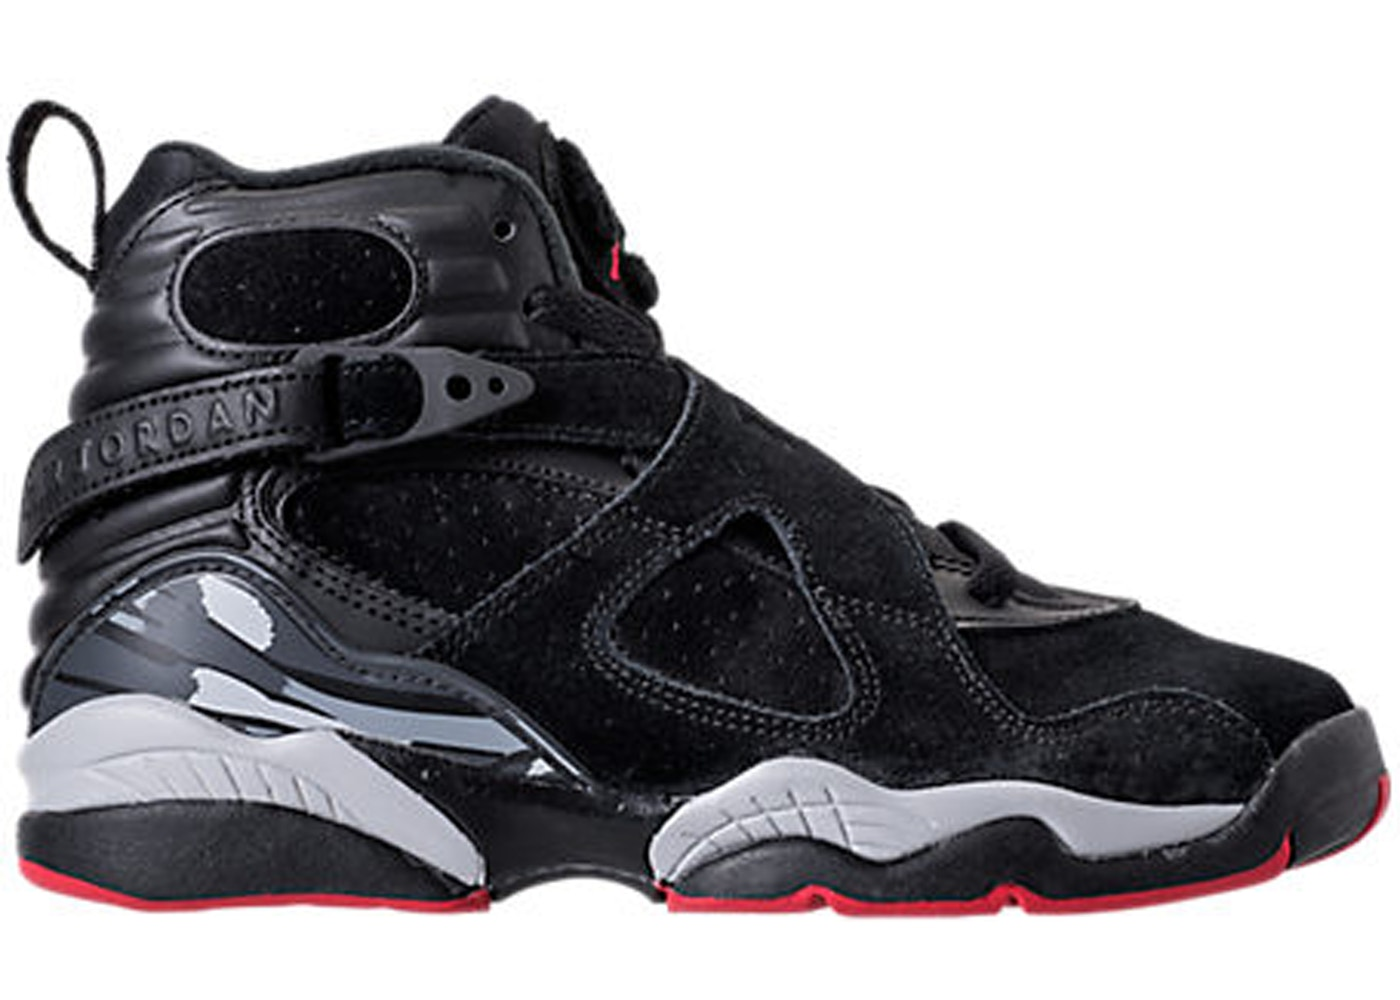 uk availability ebc1a 4dc17 Jordan 8 Retro Black Cement (GS)